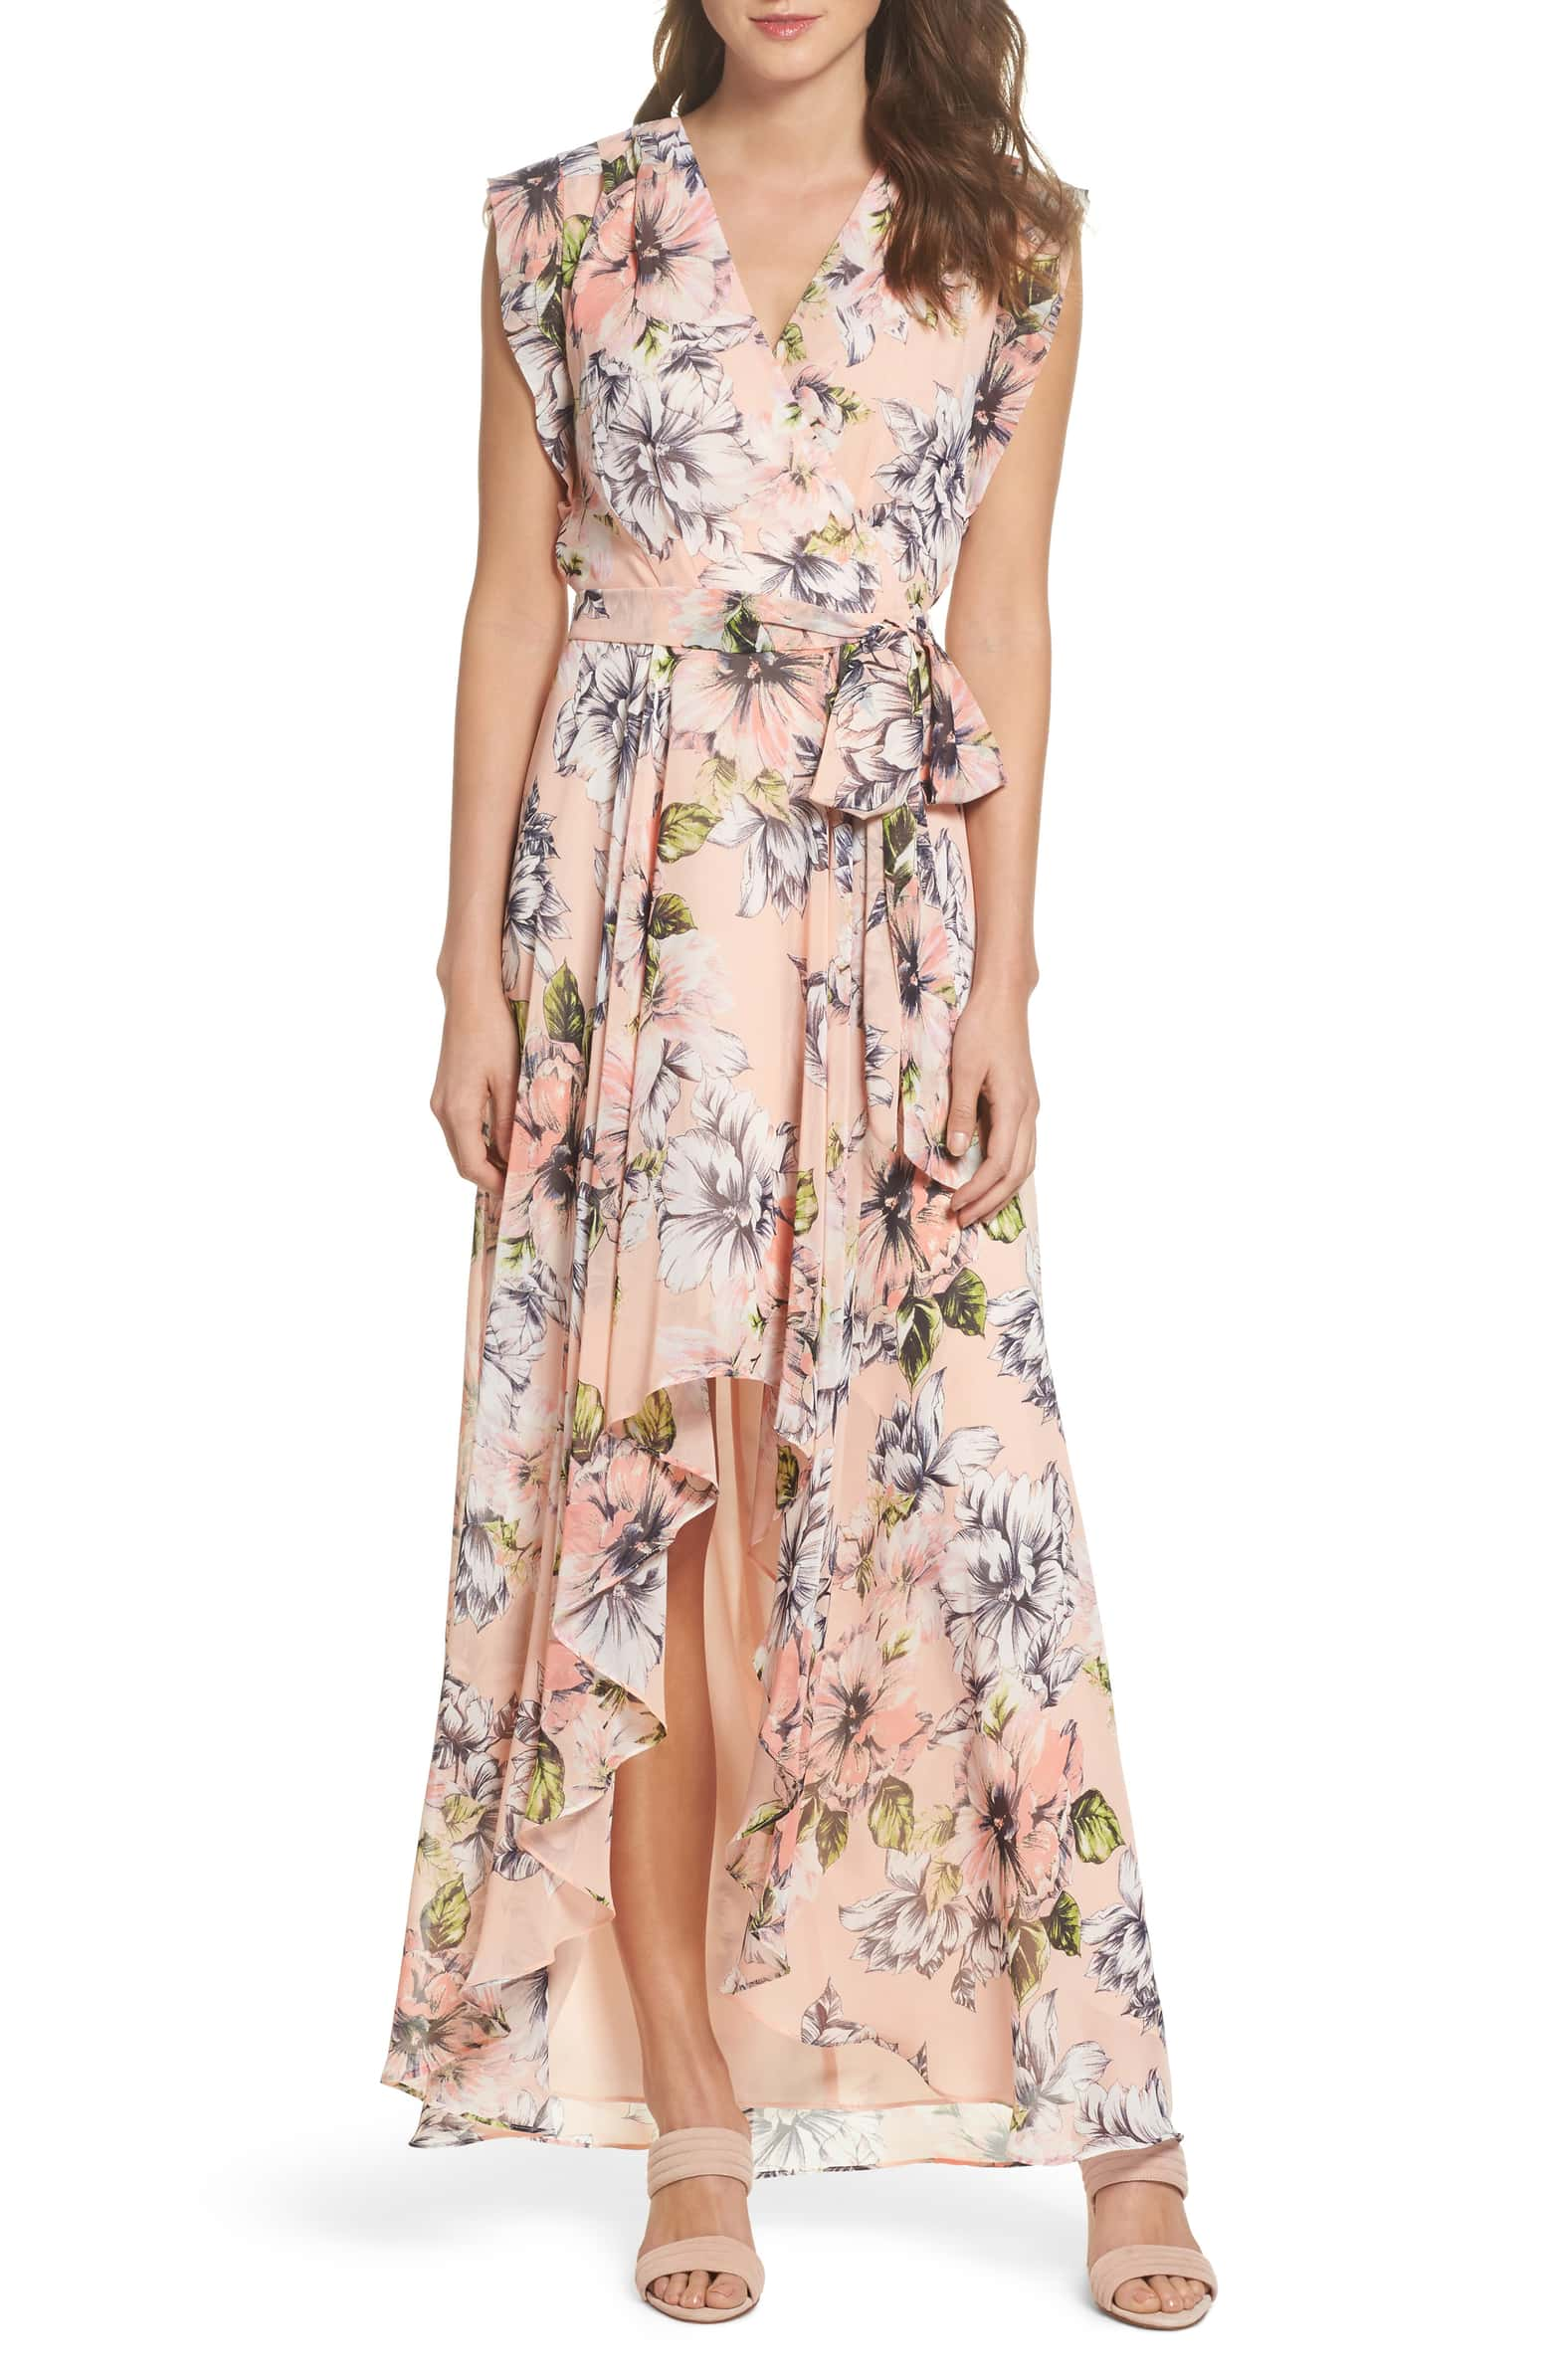 floral high low dress.jpg